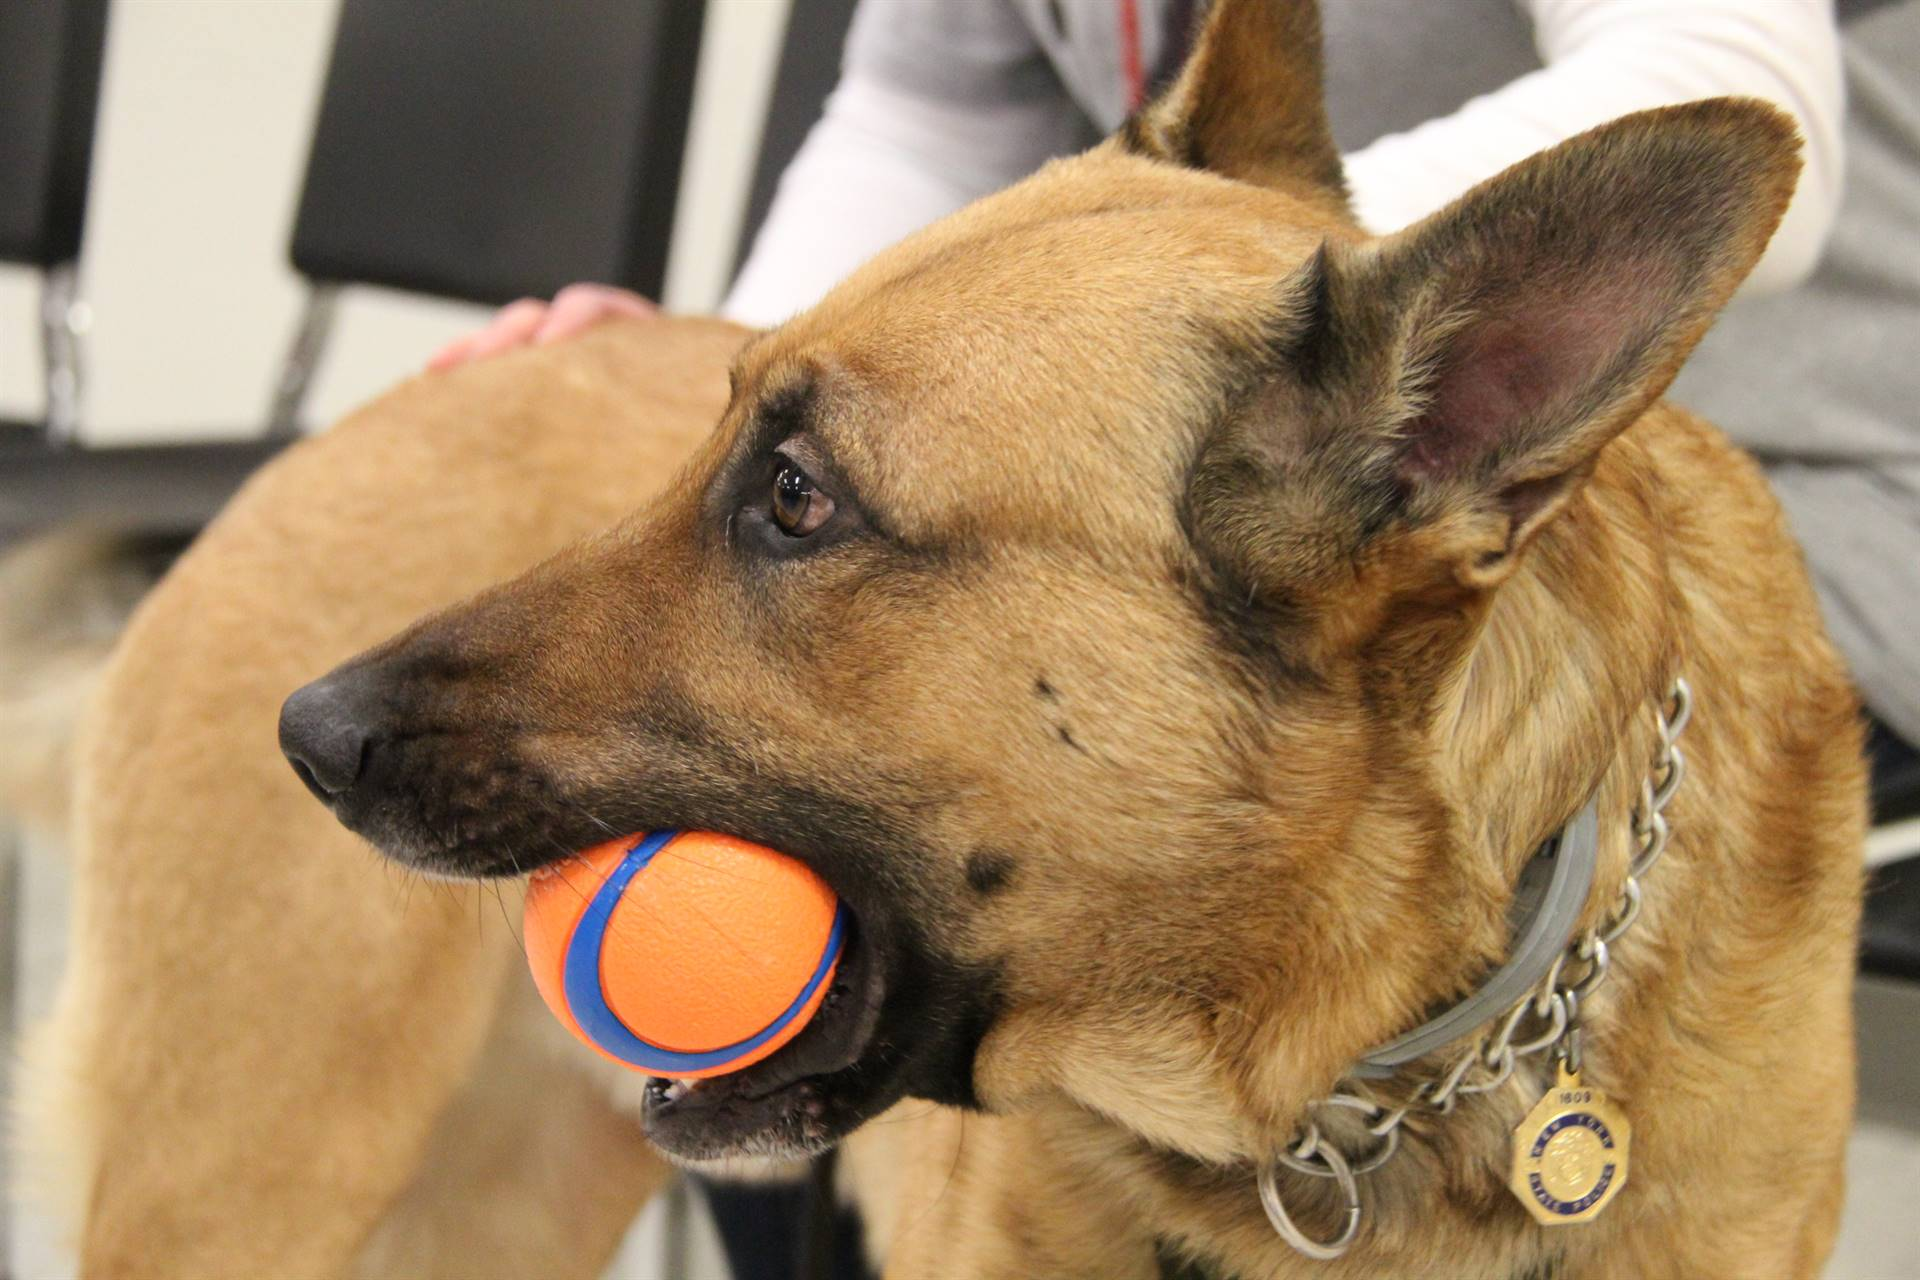 k 9 trooper with ball